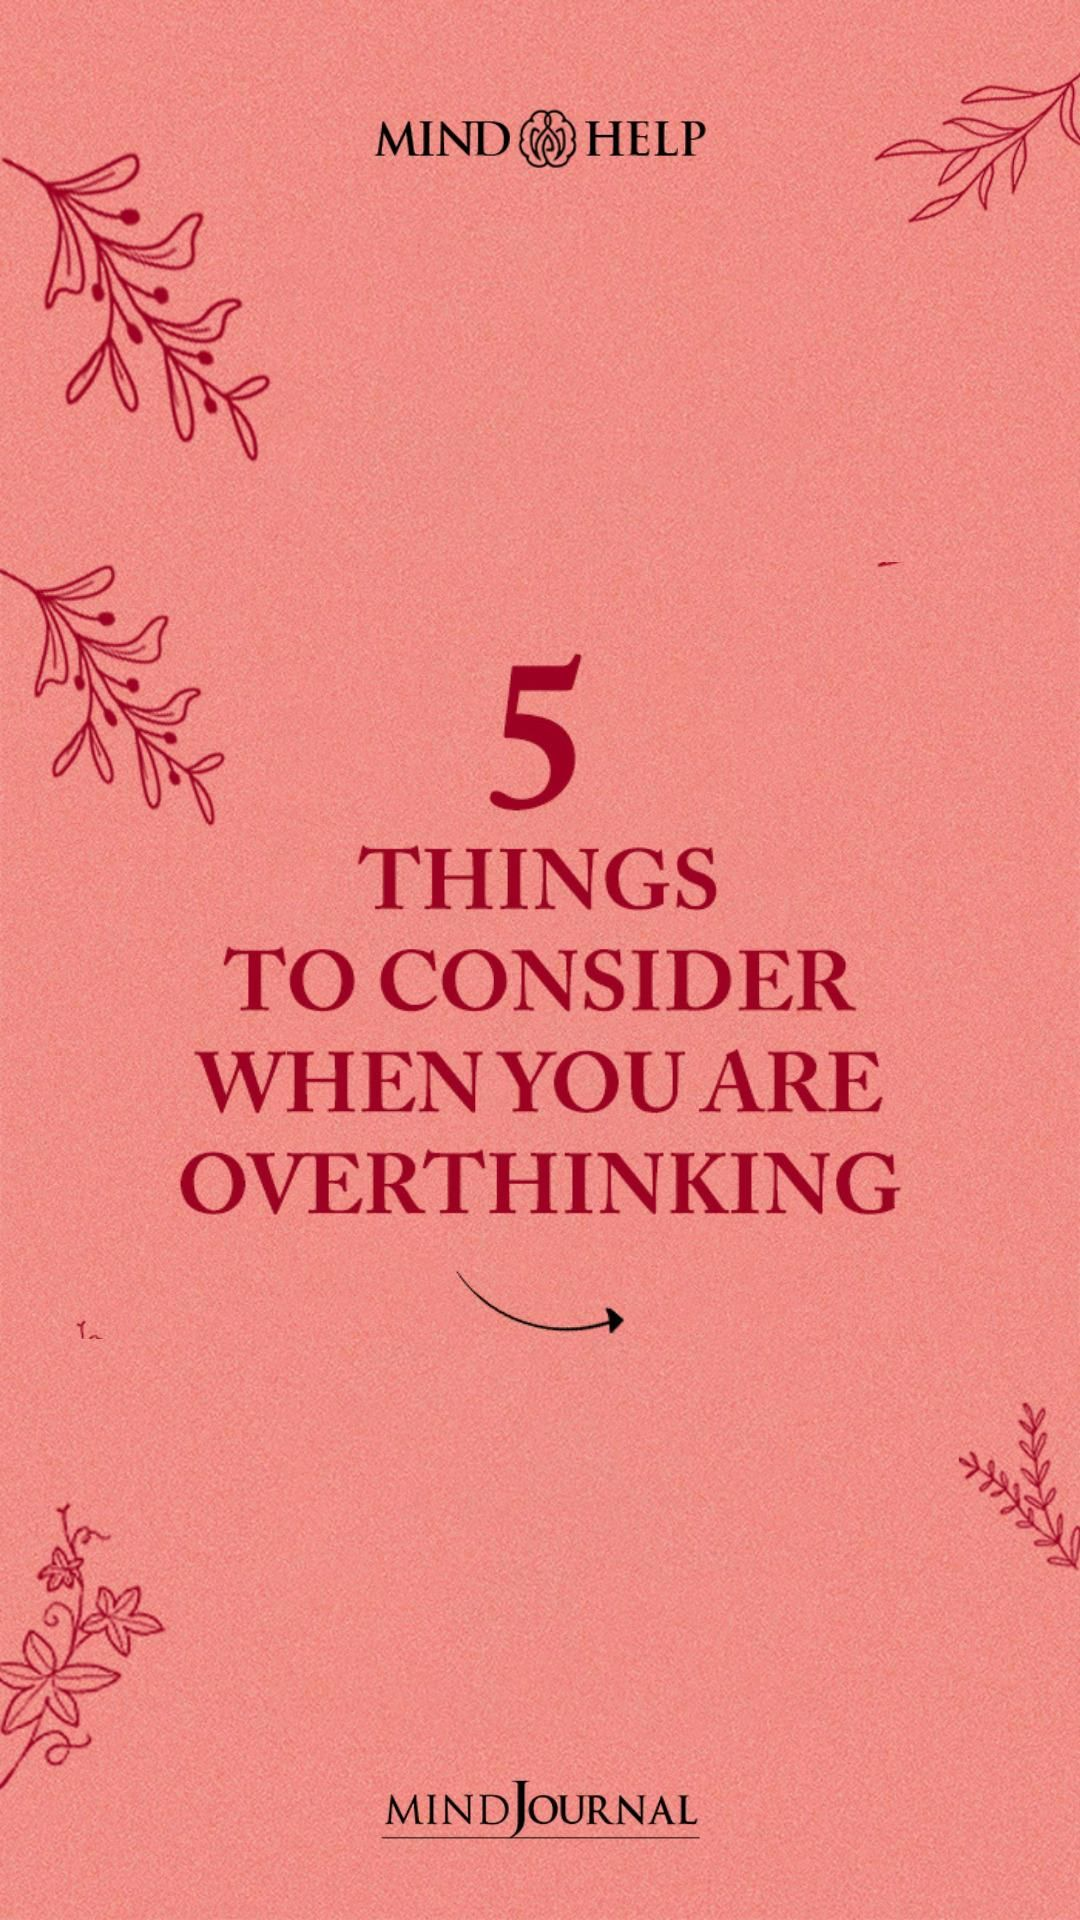 5 Things To Consider When You Are Overthinking